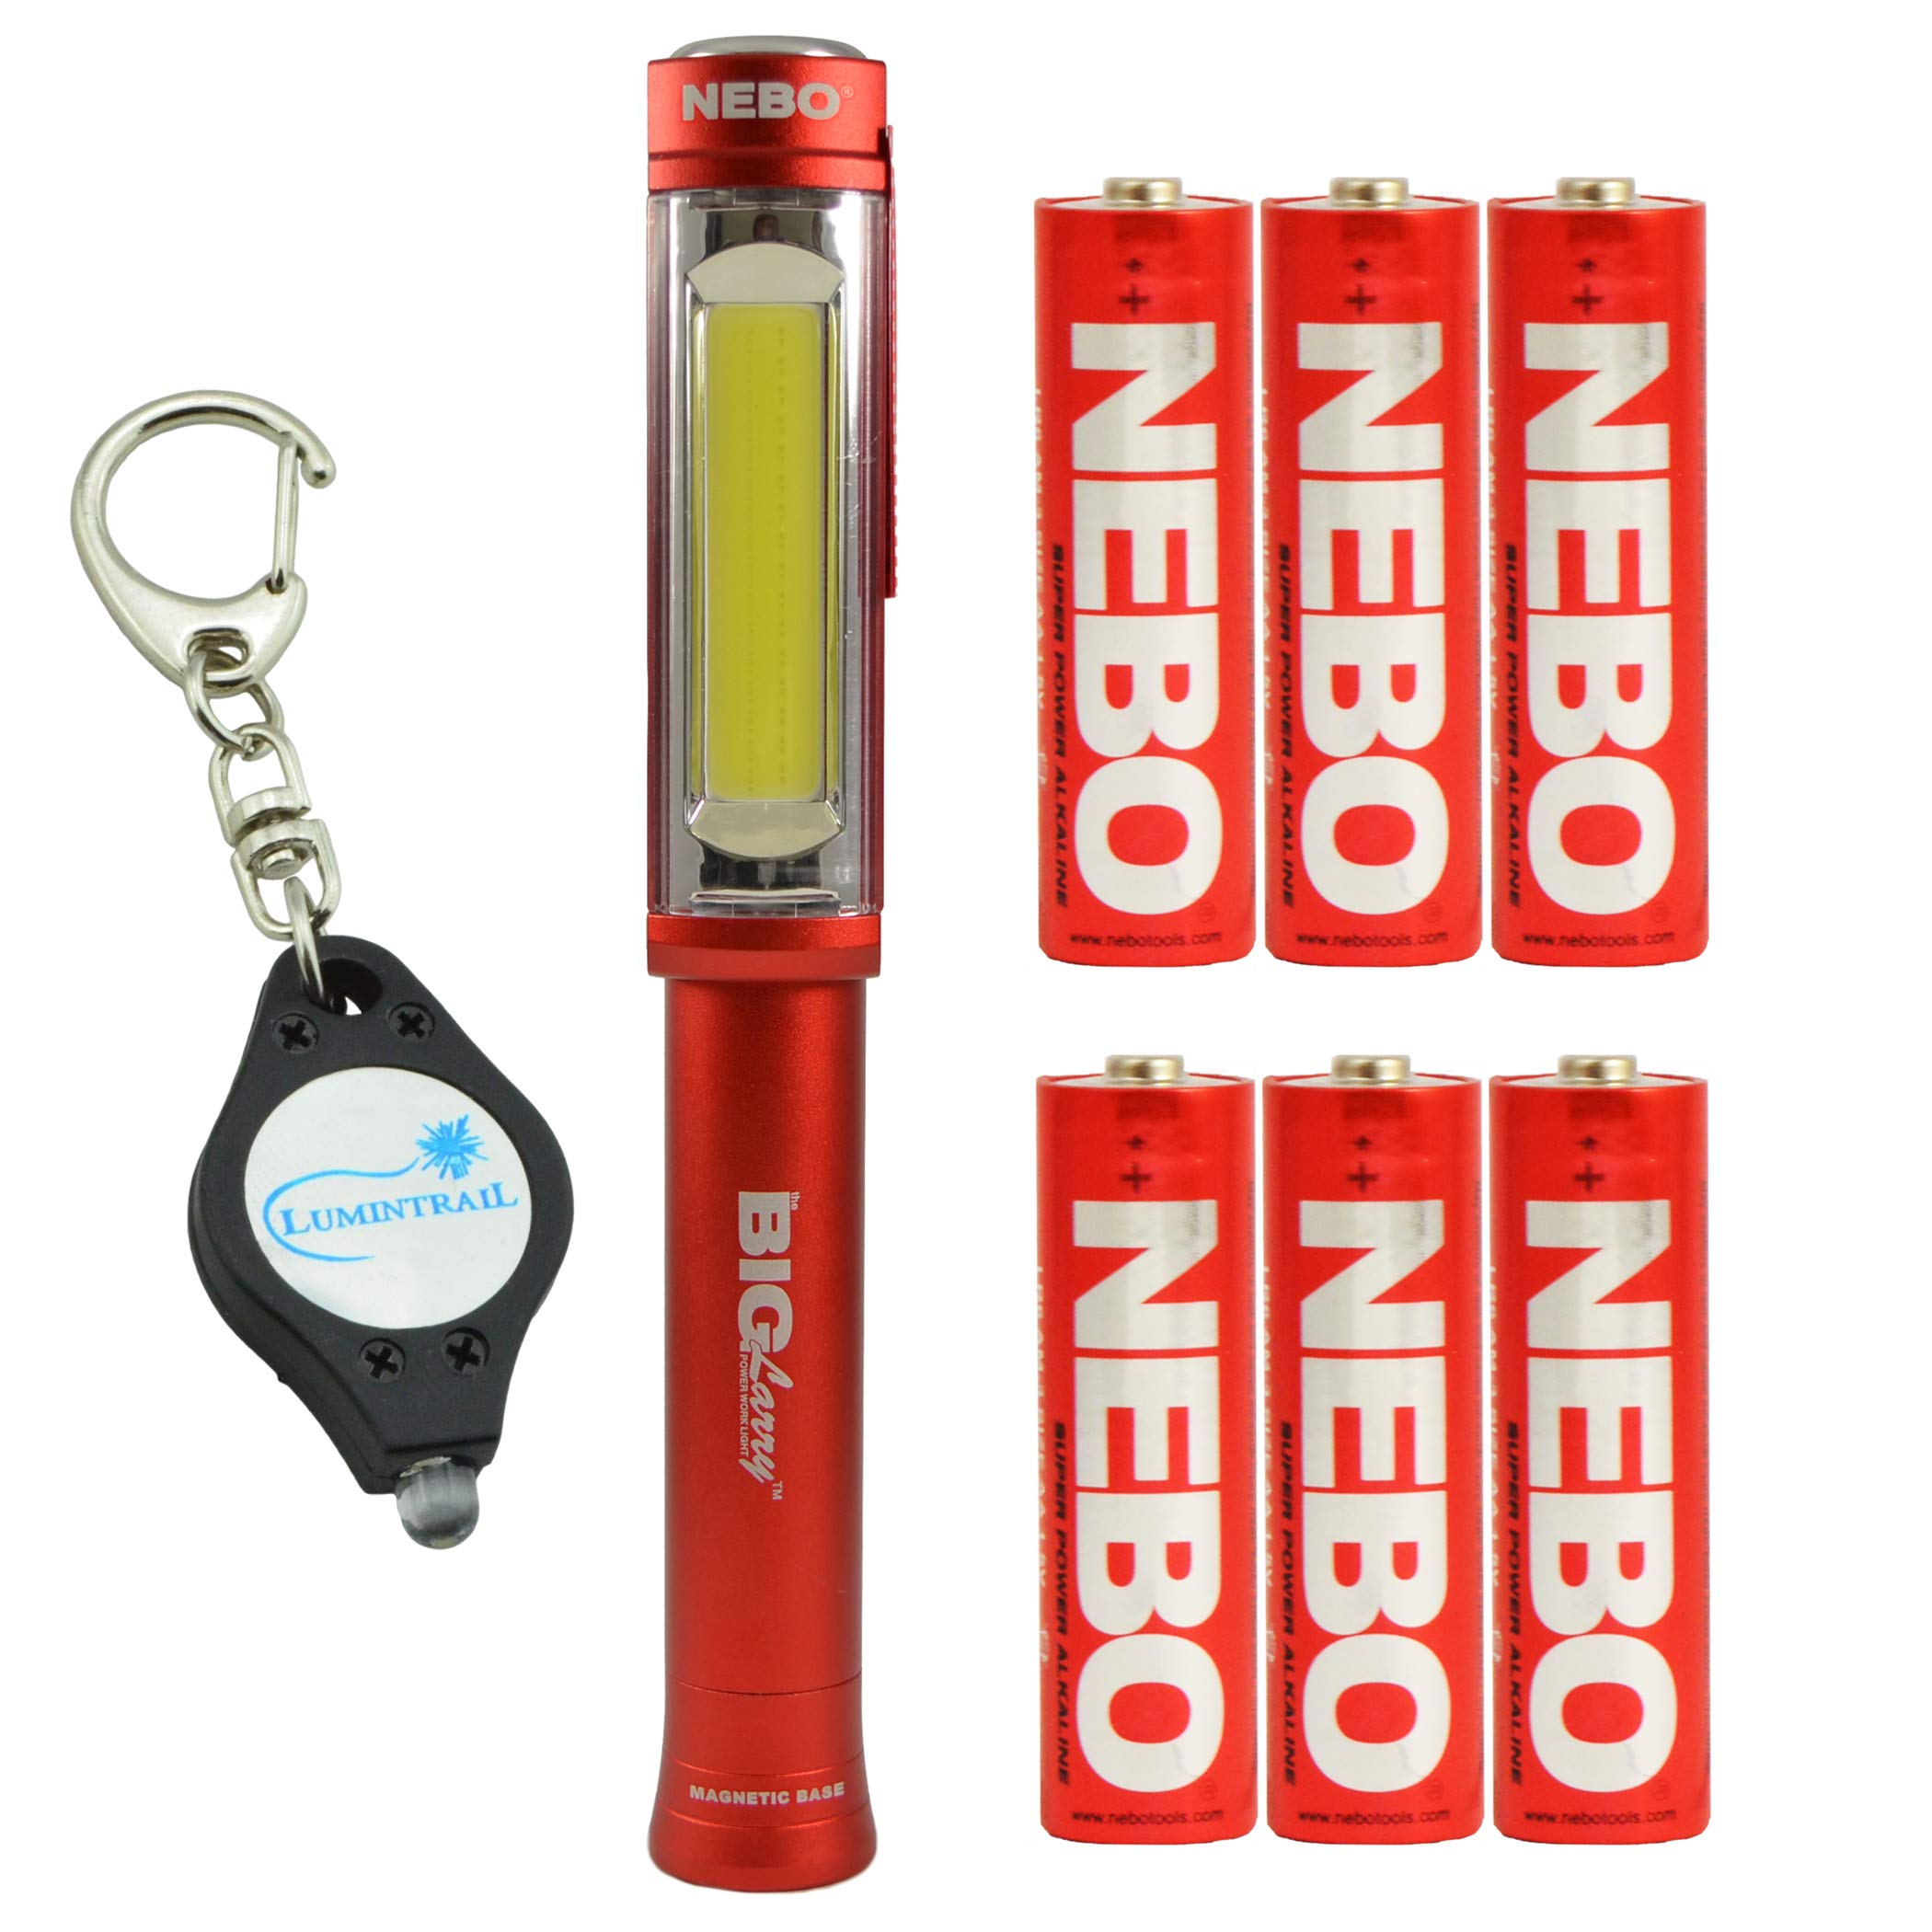 NEBO BIG Larry Magnetic 400 Lumens COB LED Work Light 6413 RED with 6 Nebo AA Batteries & Lumintrail Keychain Light